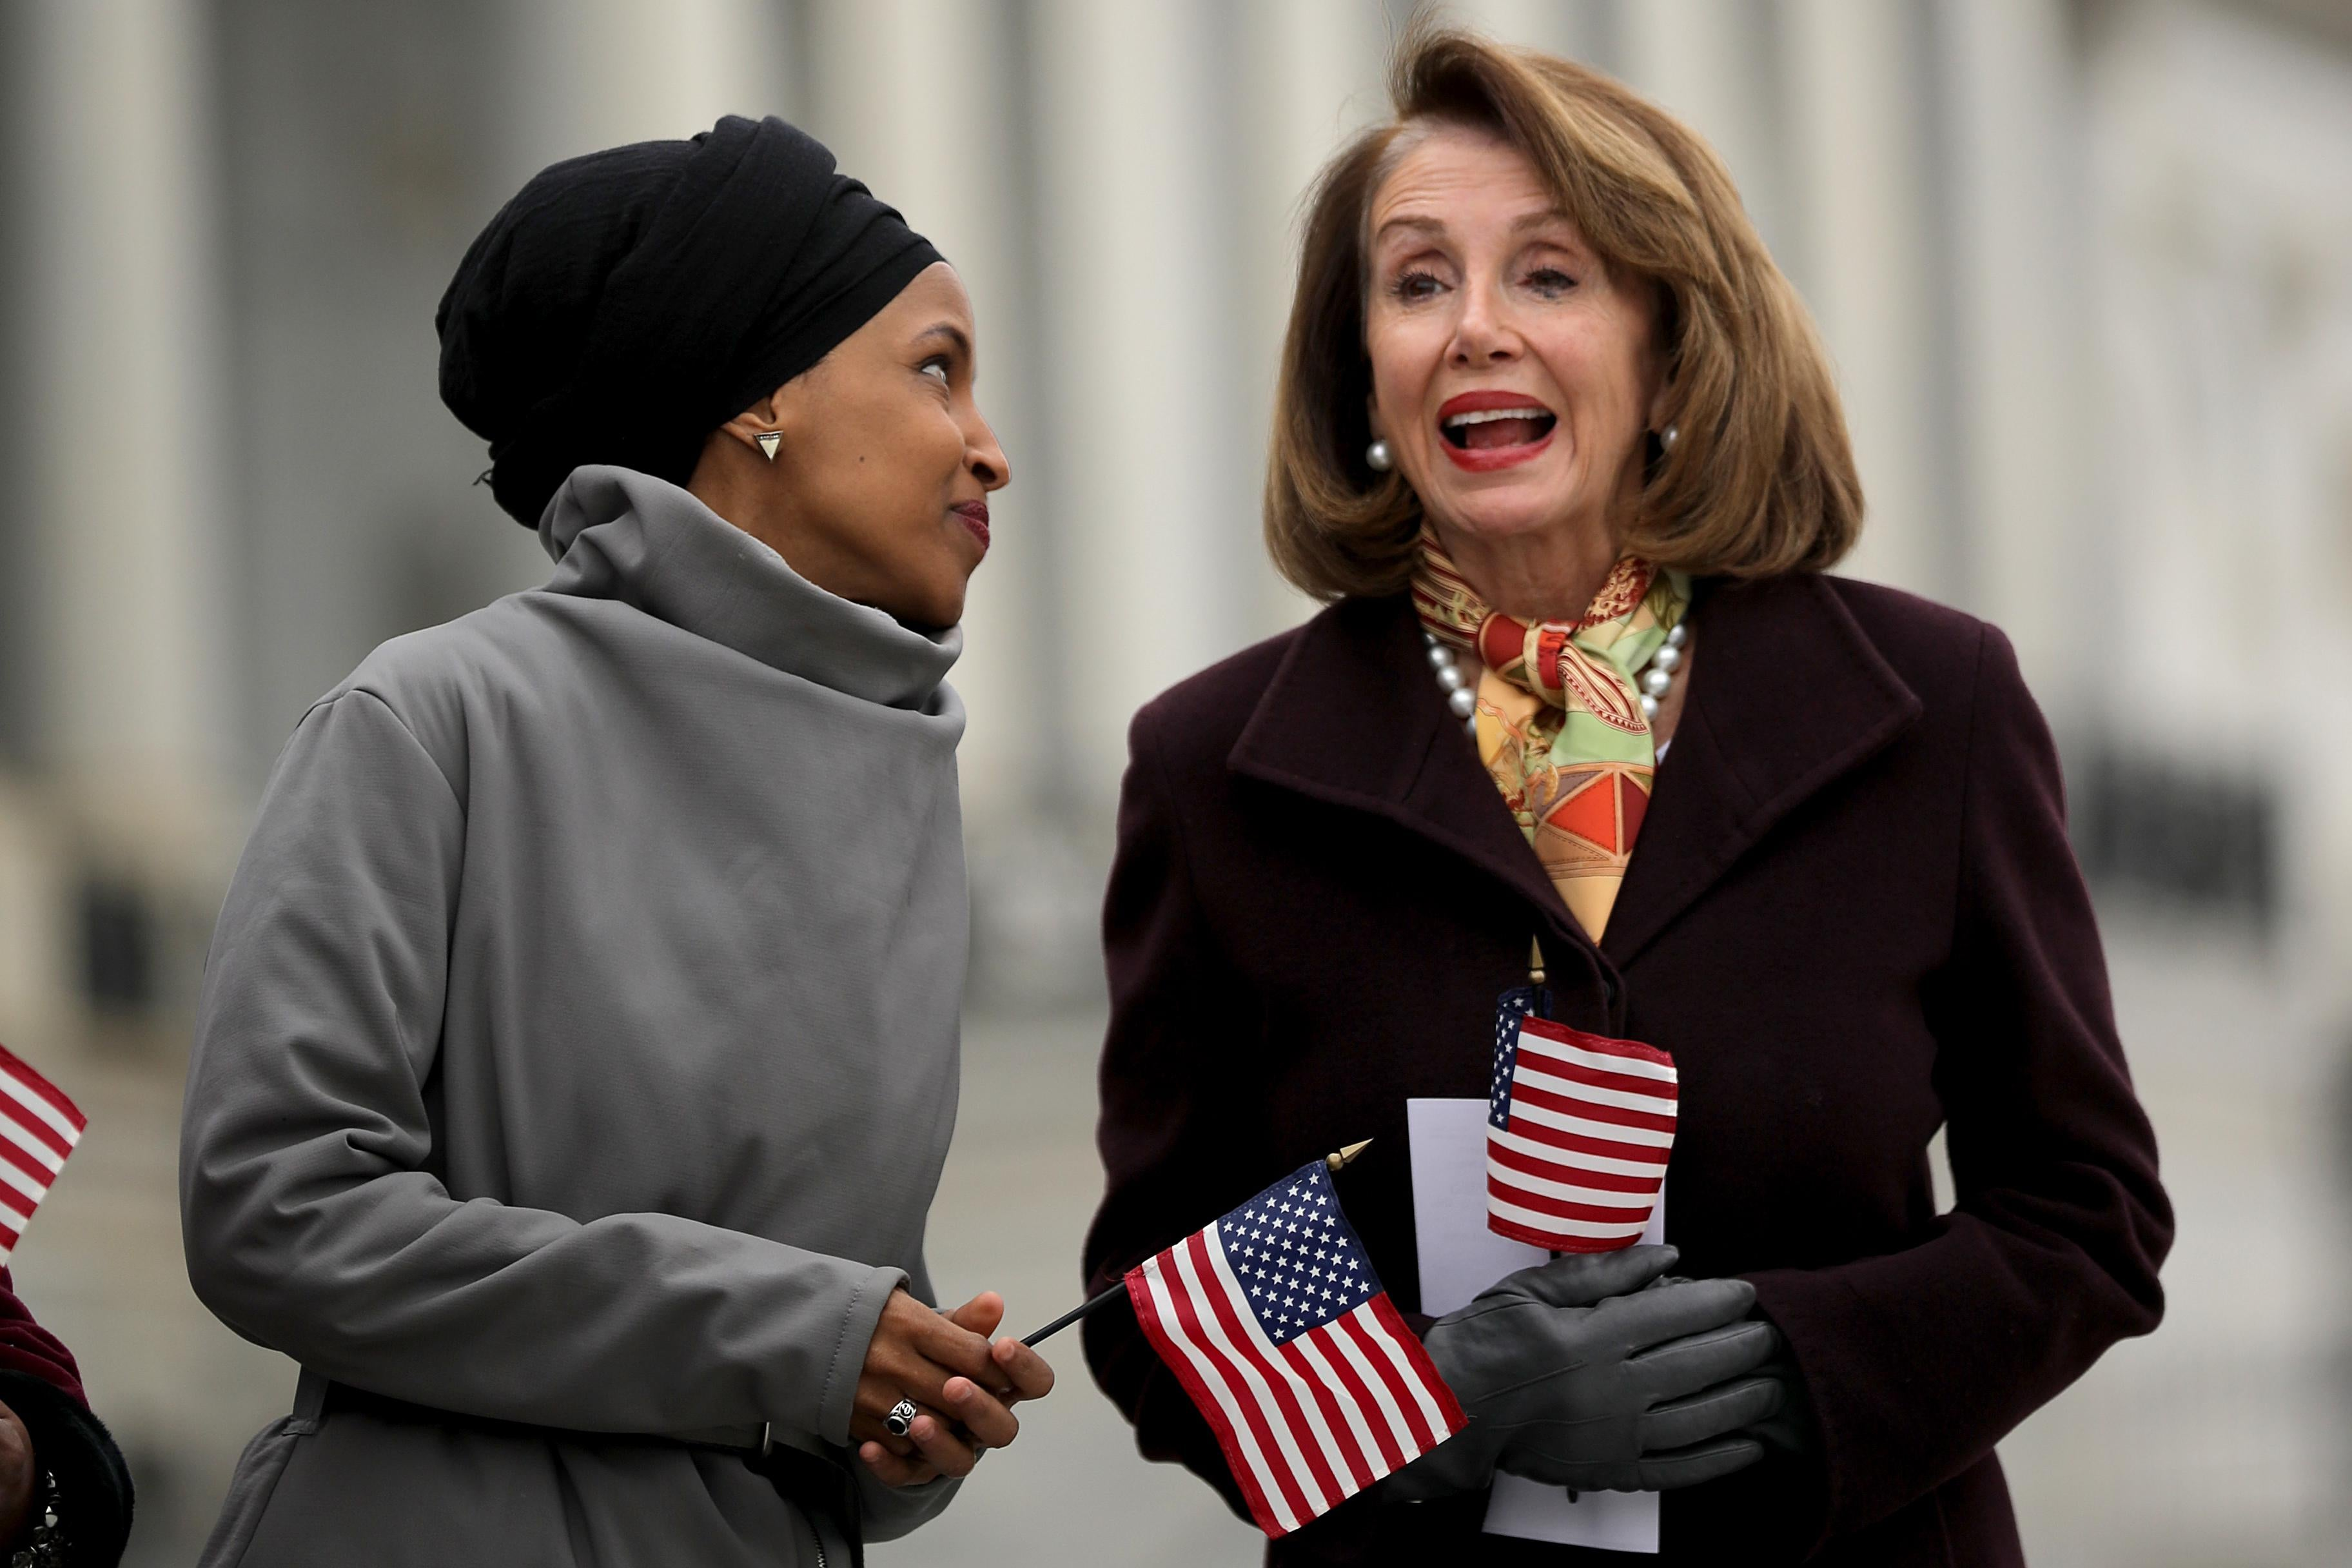 Rep. Ilhan Omar talks with Speaker of the House Nancy Pelosi during a rally on the East Steps of the U.S. Capitol on March 8, 2019 in Washington, D.C.